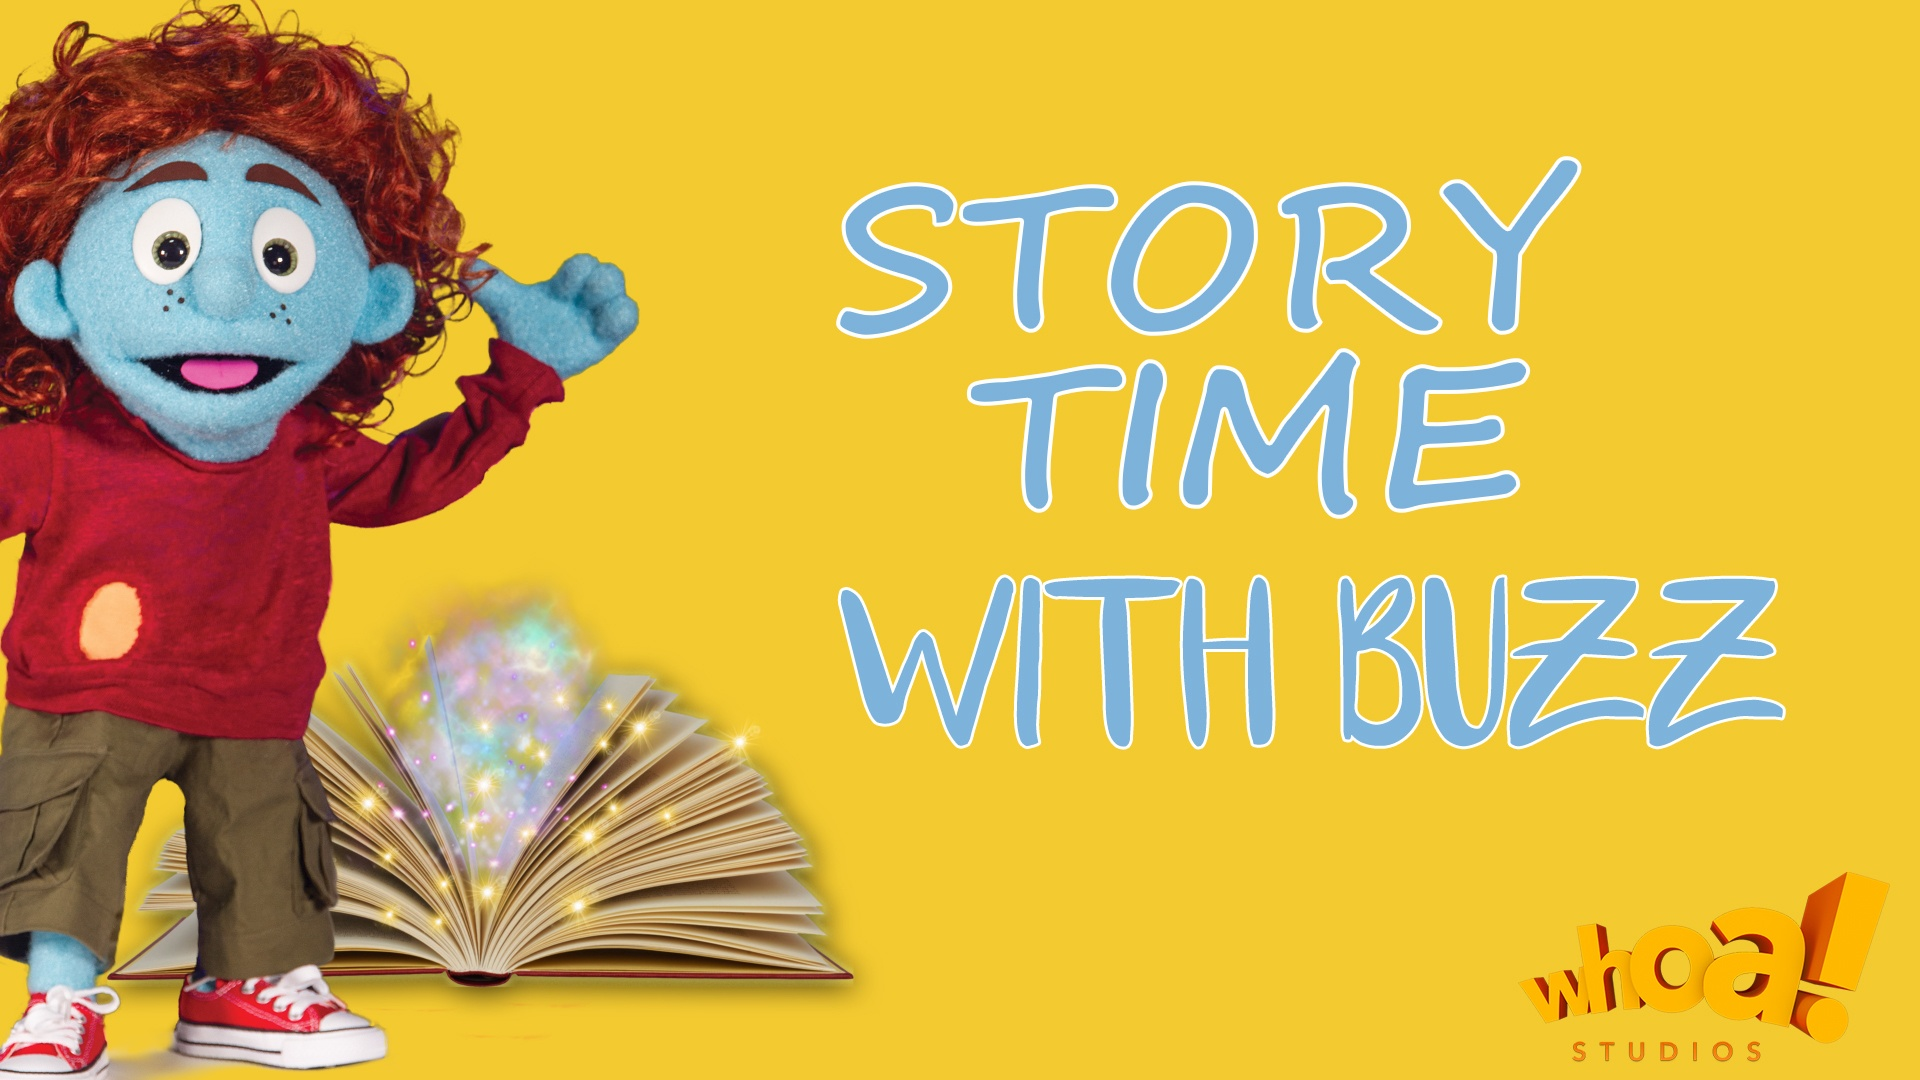 Story time with buzz board